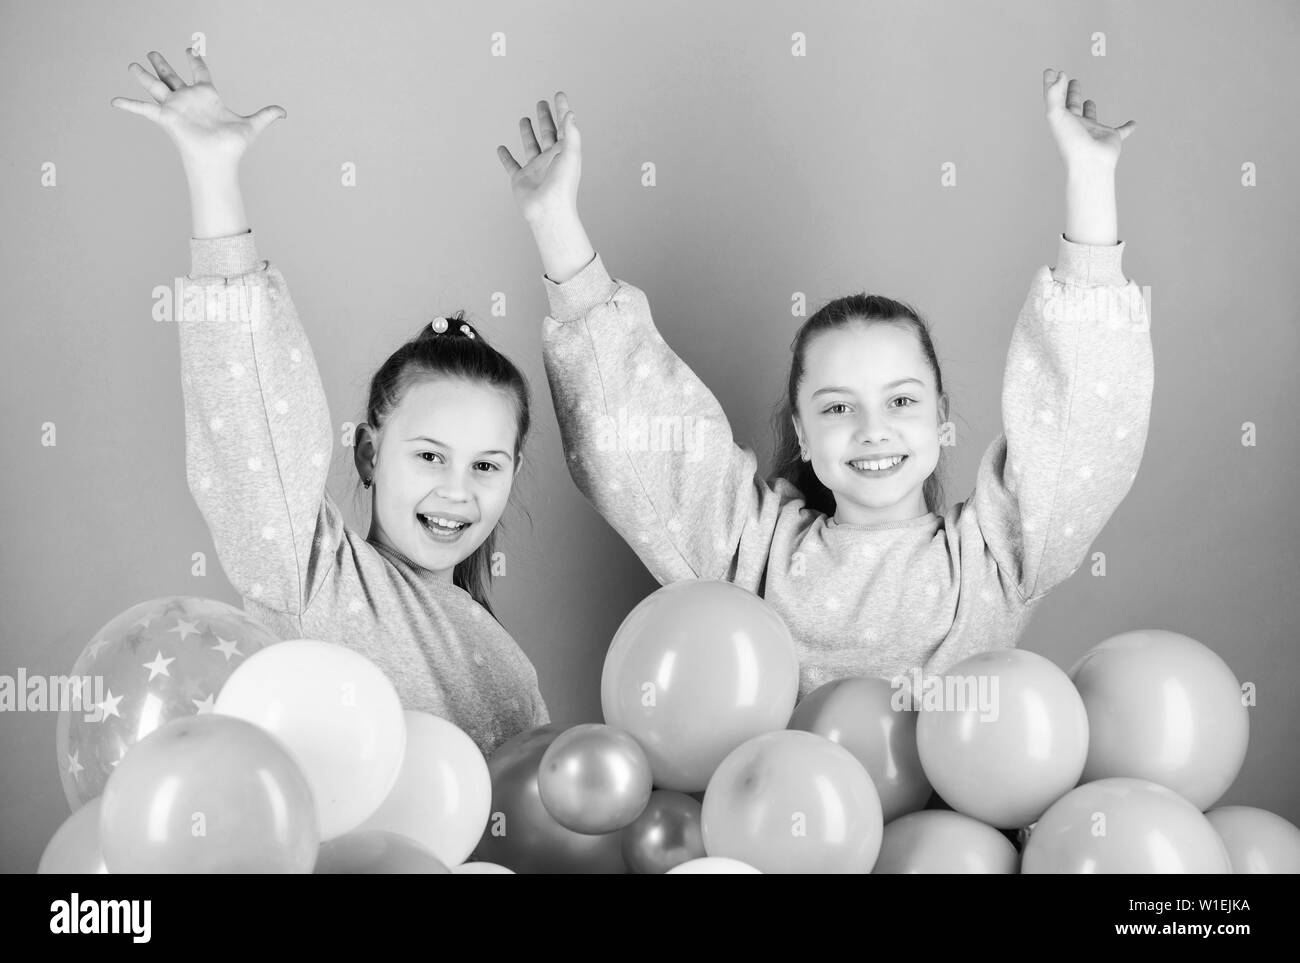 Sisters organize home party. Having fun concept. Balloon theme party. Girls best friends near air balloons. Birthday party. Happiness and cheerful moments. Carefree childhood. Start this party. - Stock Image